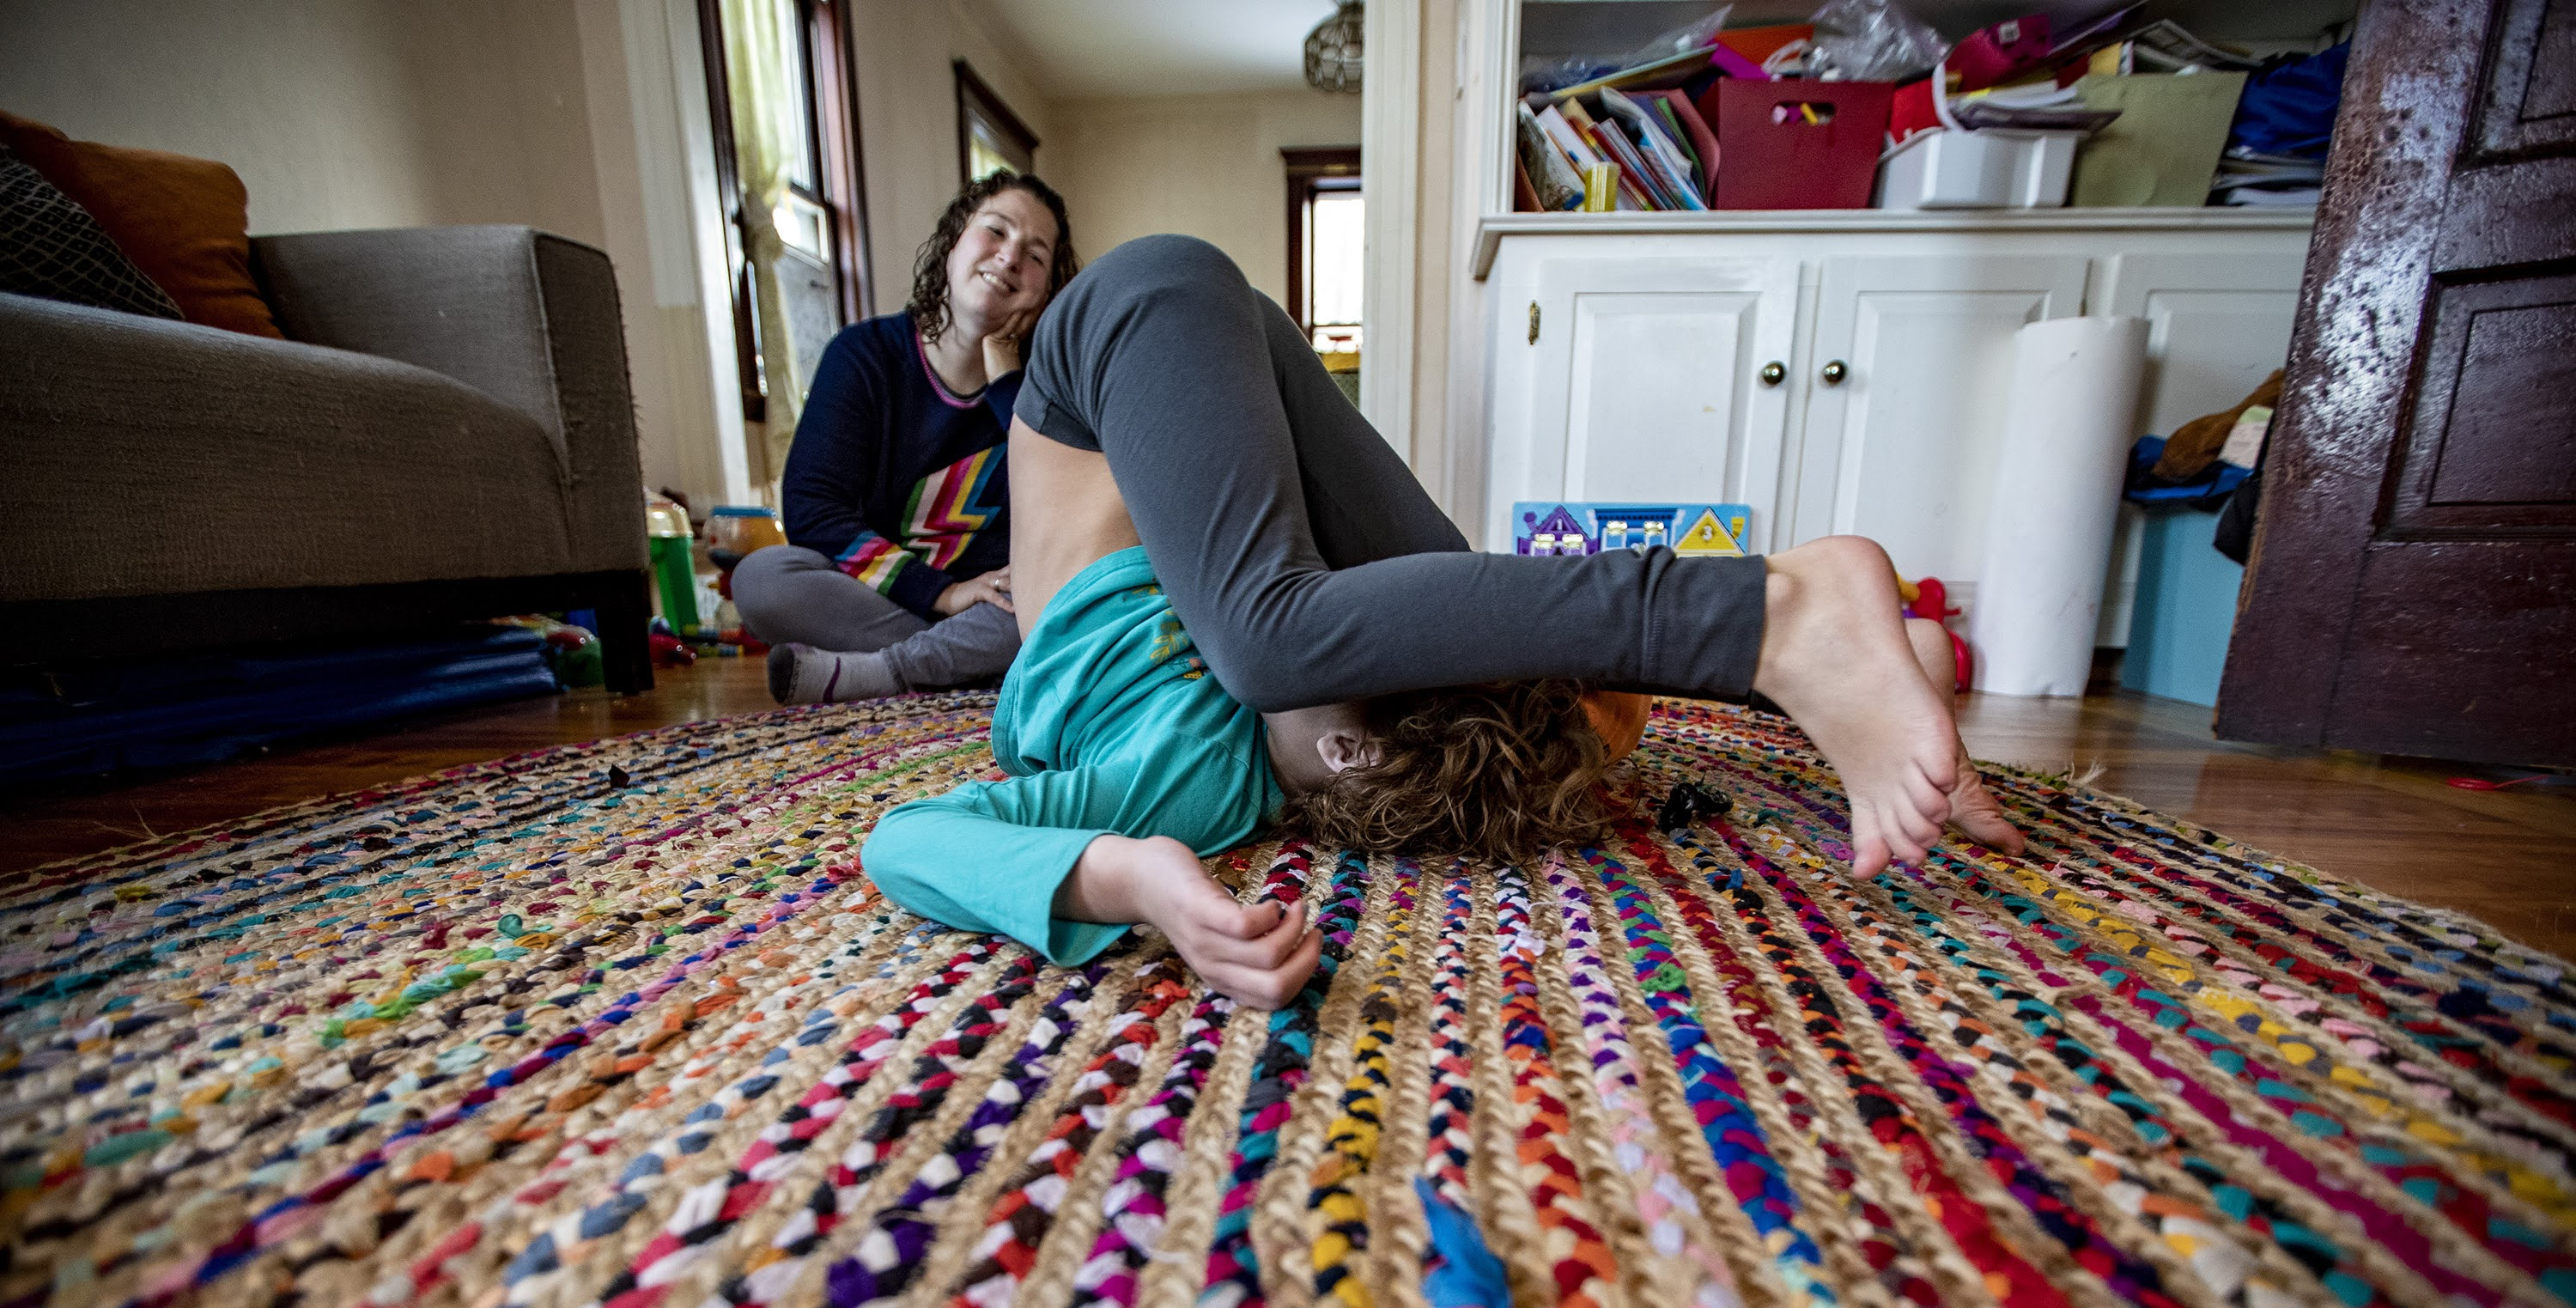 Hallel does a backwards roll in the living room as their mother watches. (Jesse Costa/WBUR)